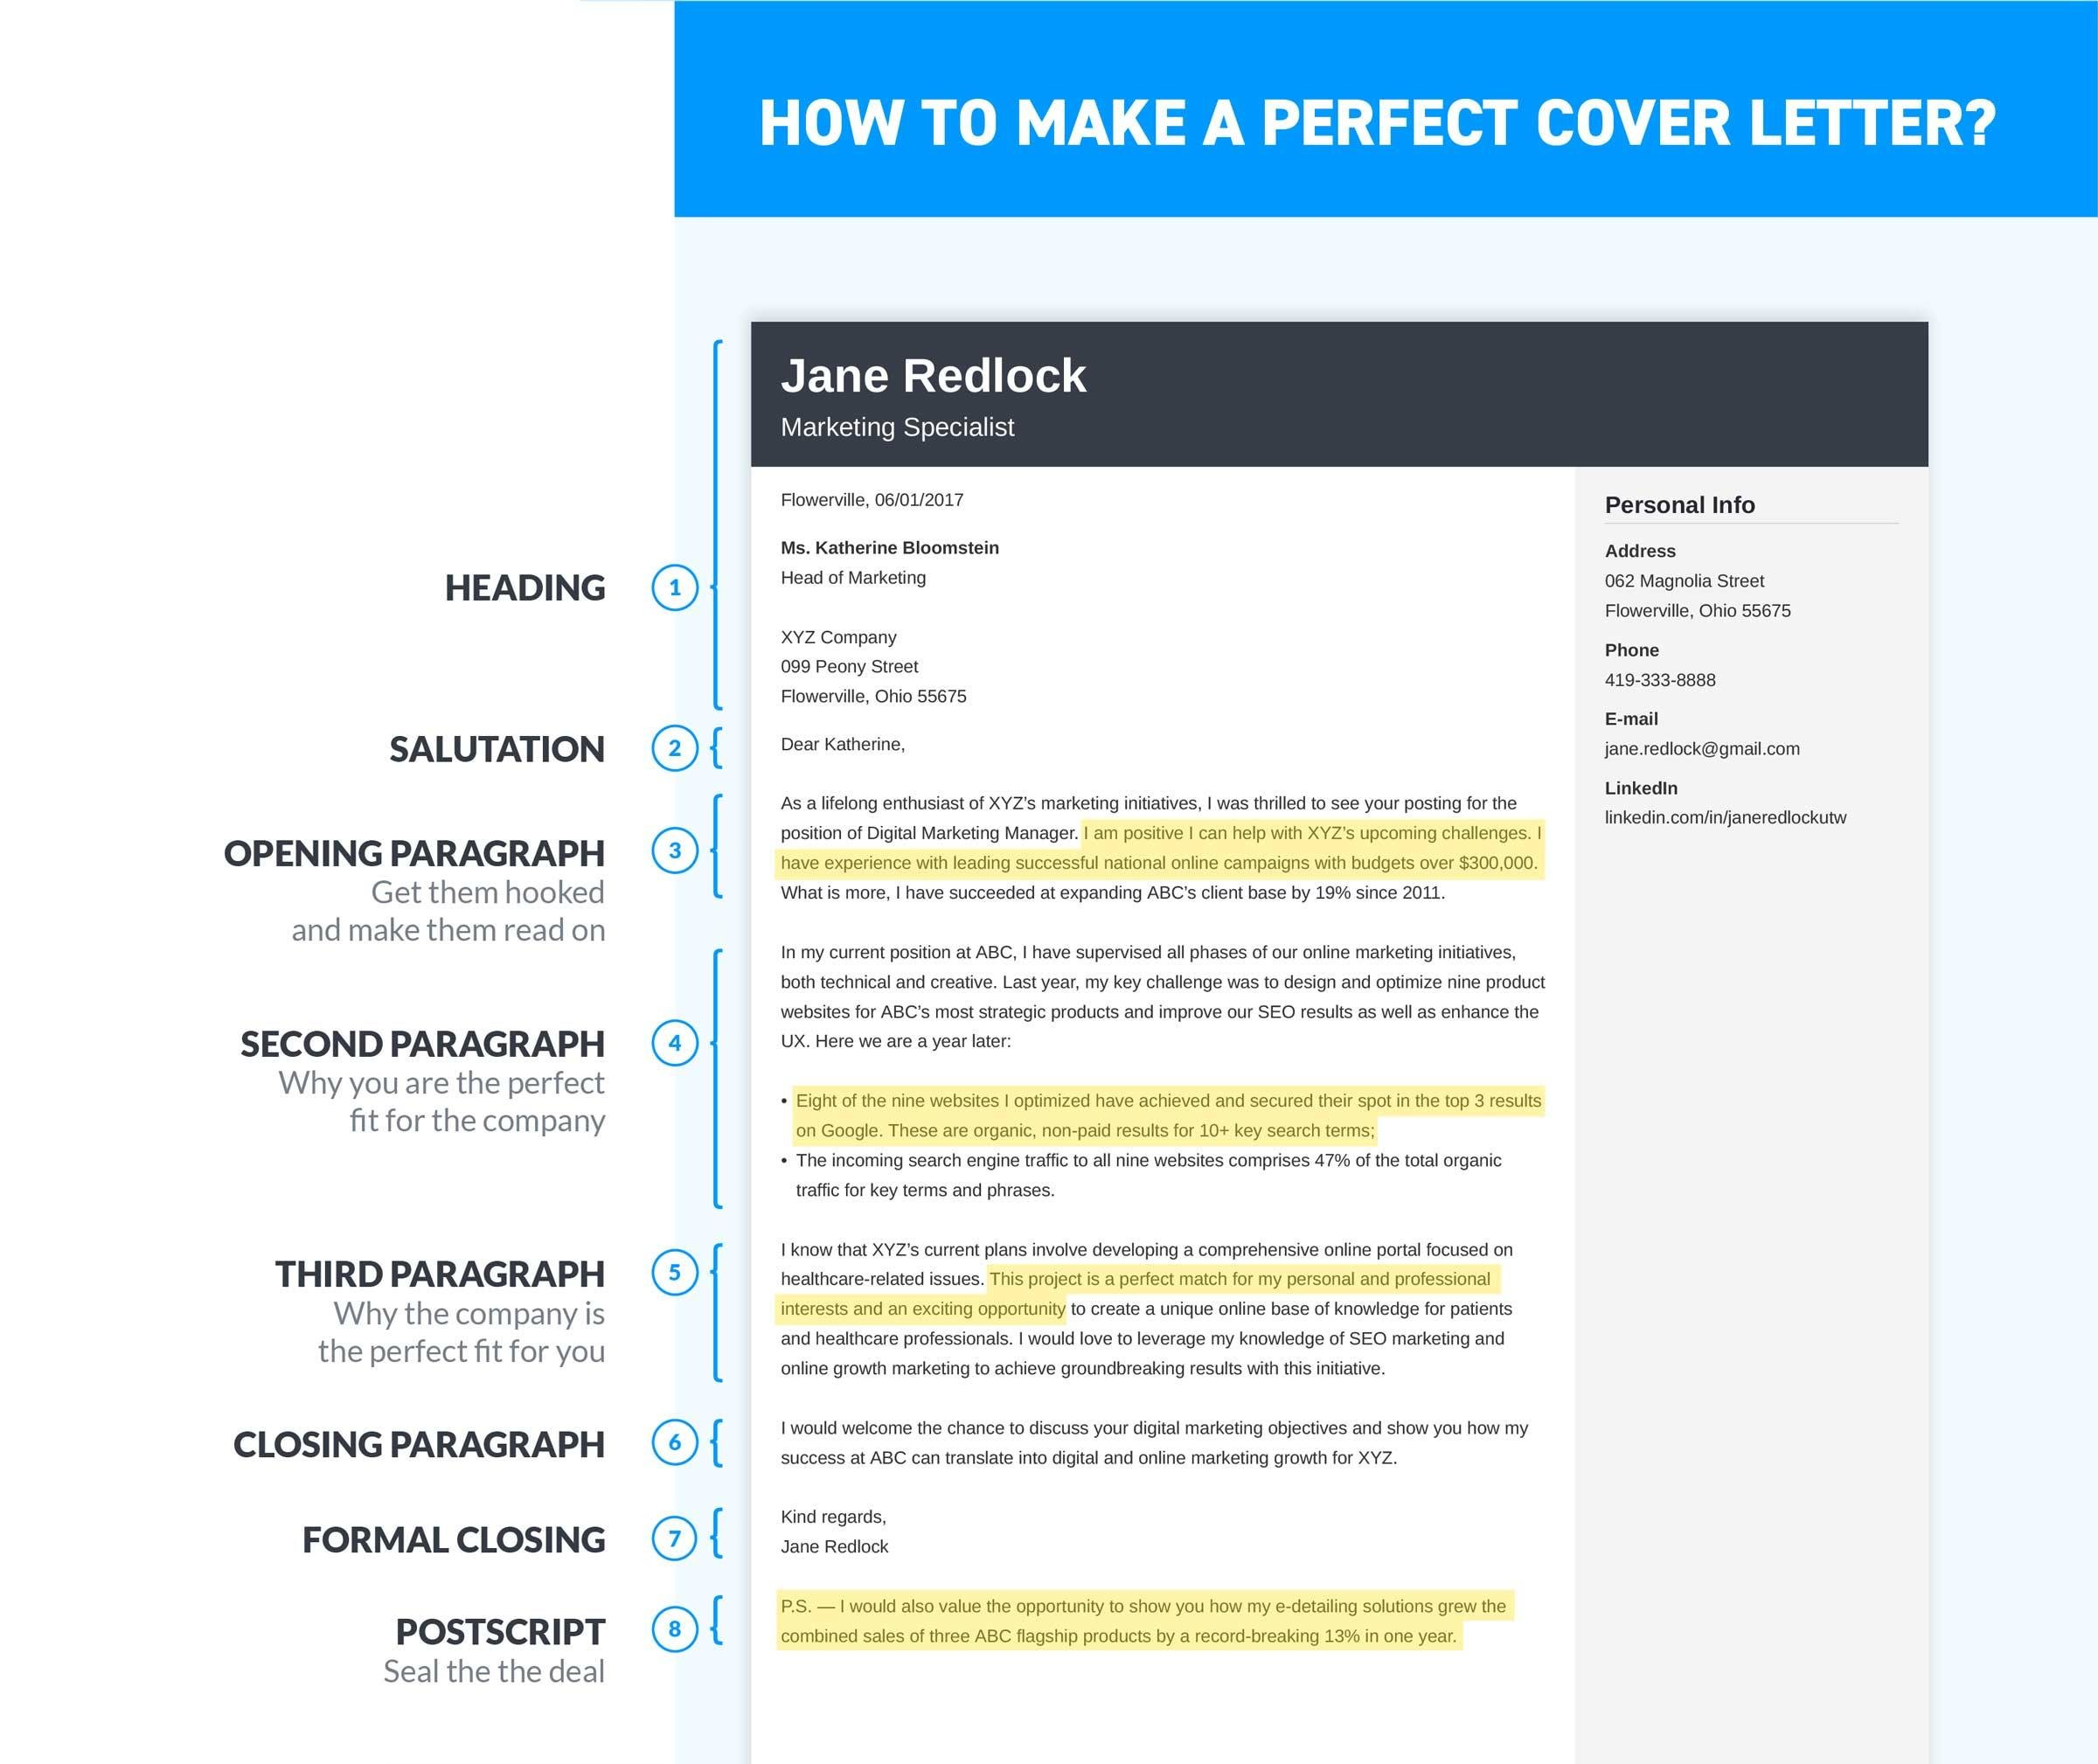 How To Do A Cover Letter Captivating How To Write A Cover Letter In 8 Simple Steps 12 Examples